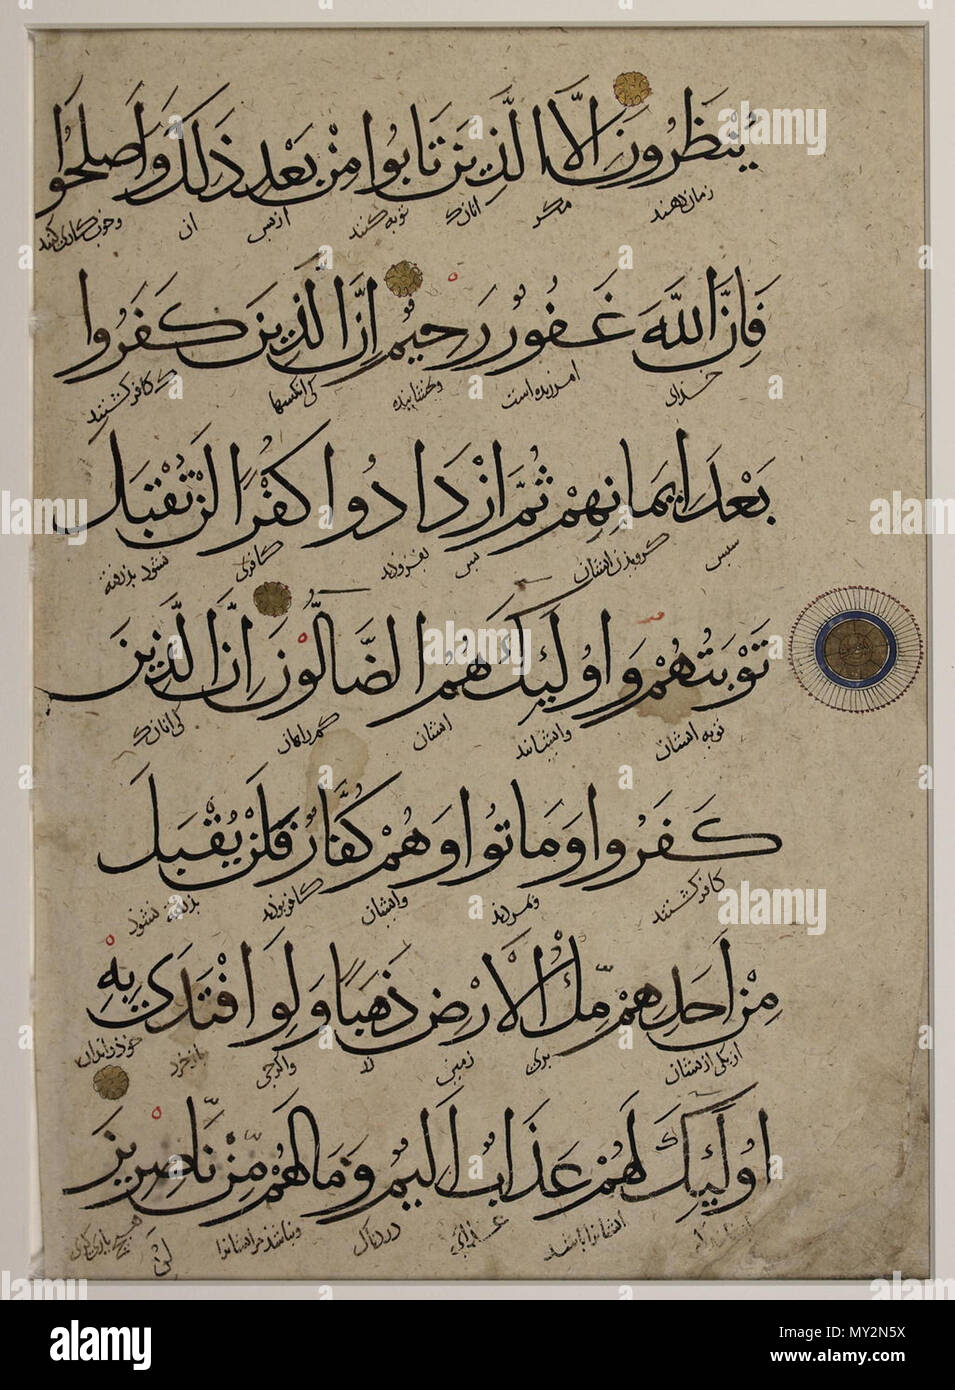 English: Verses 85-88 of the 3rd chapter of the Qur'an entitled Al